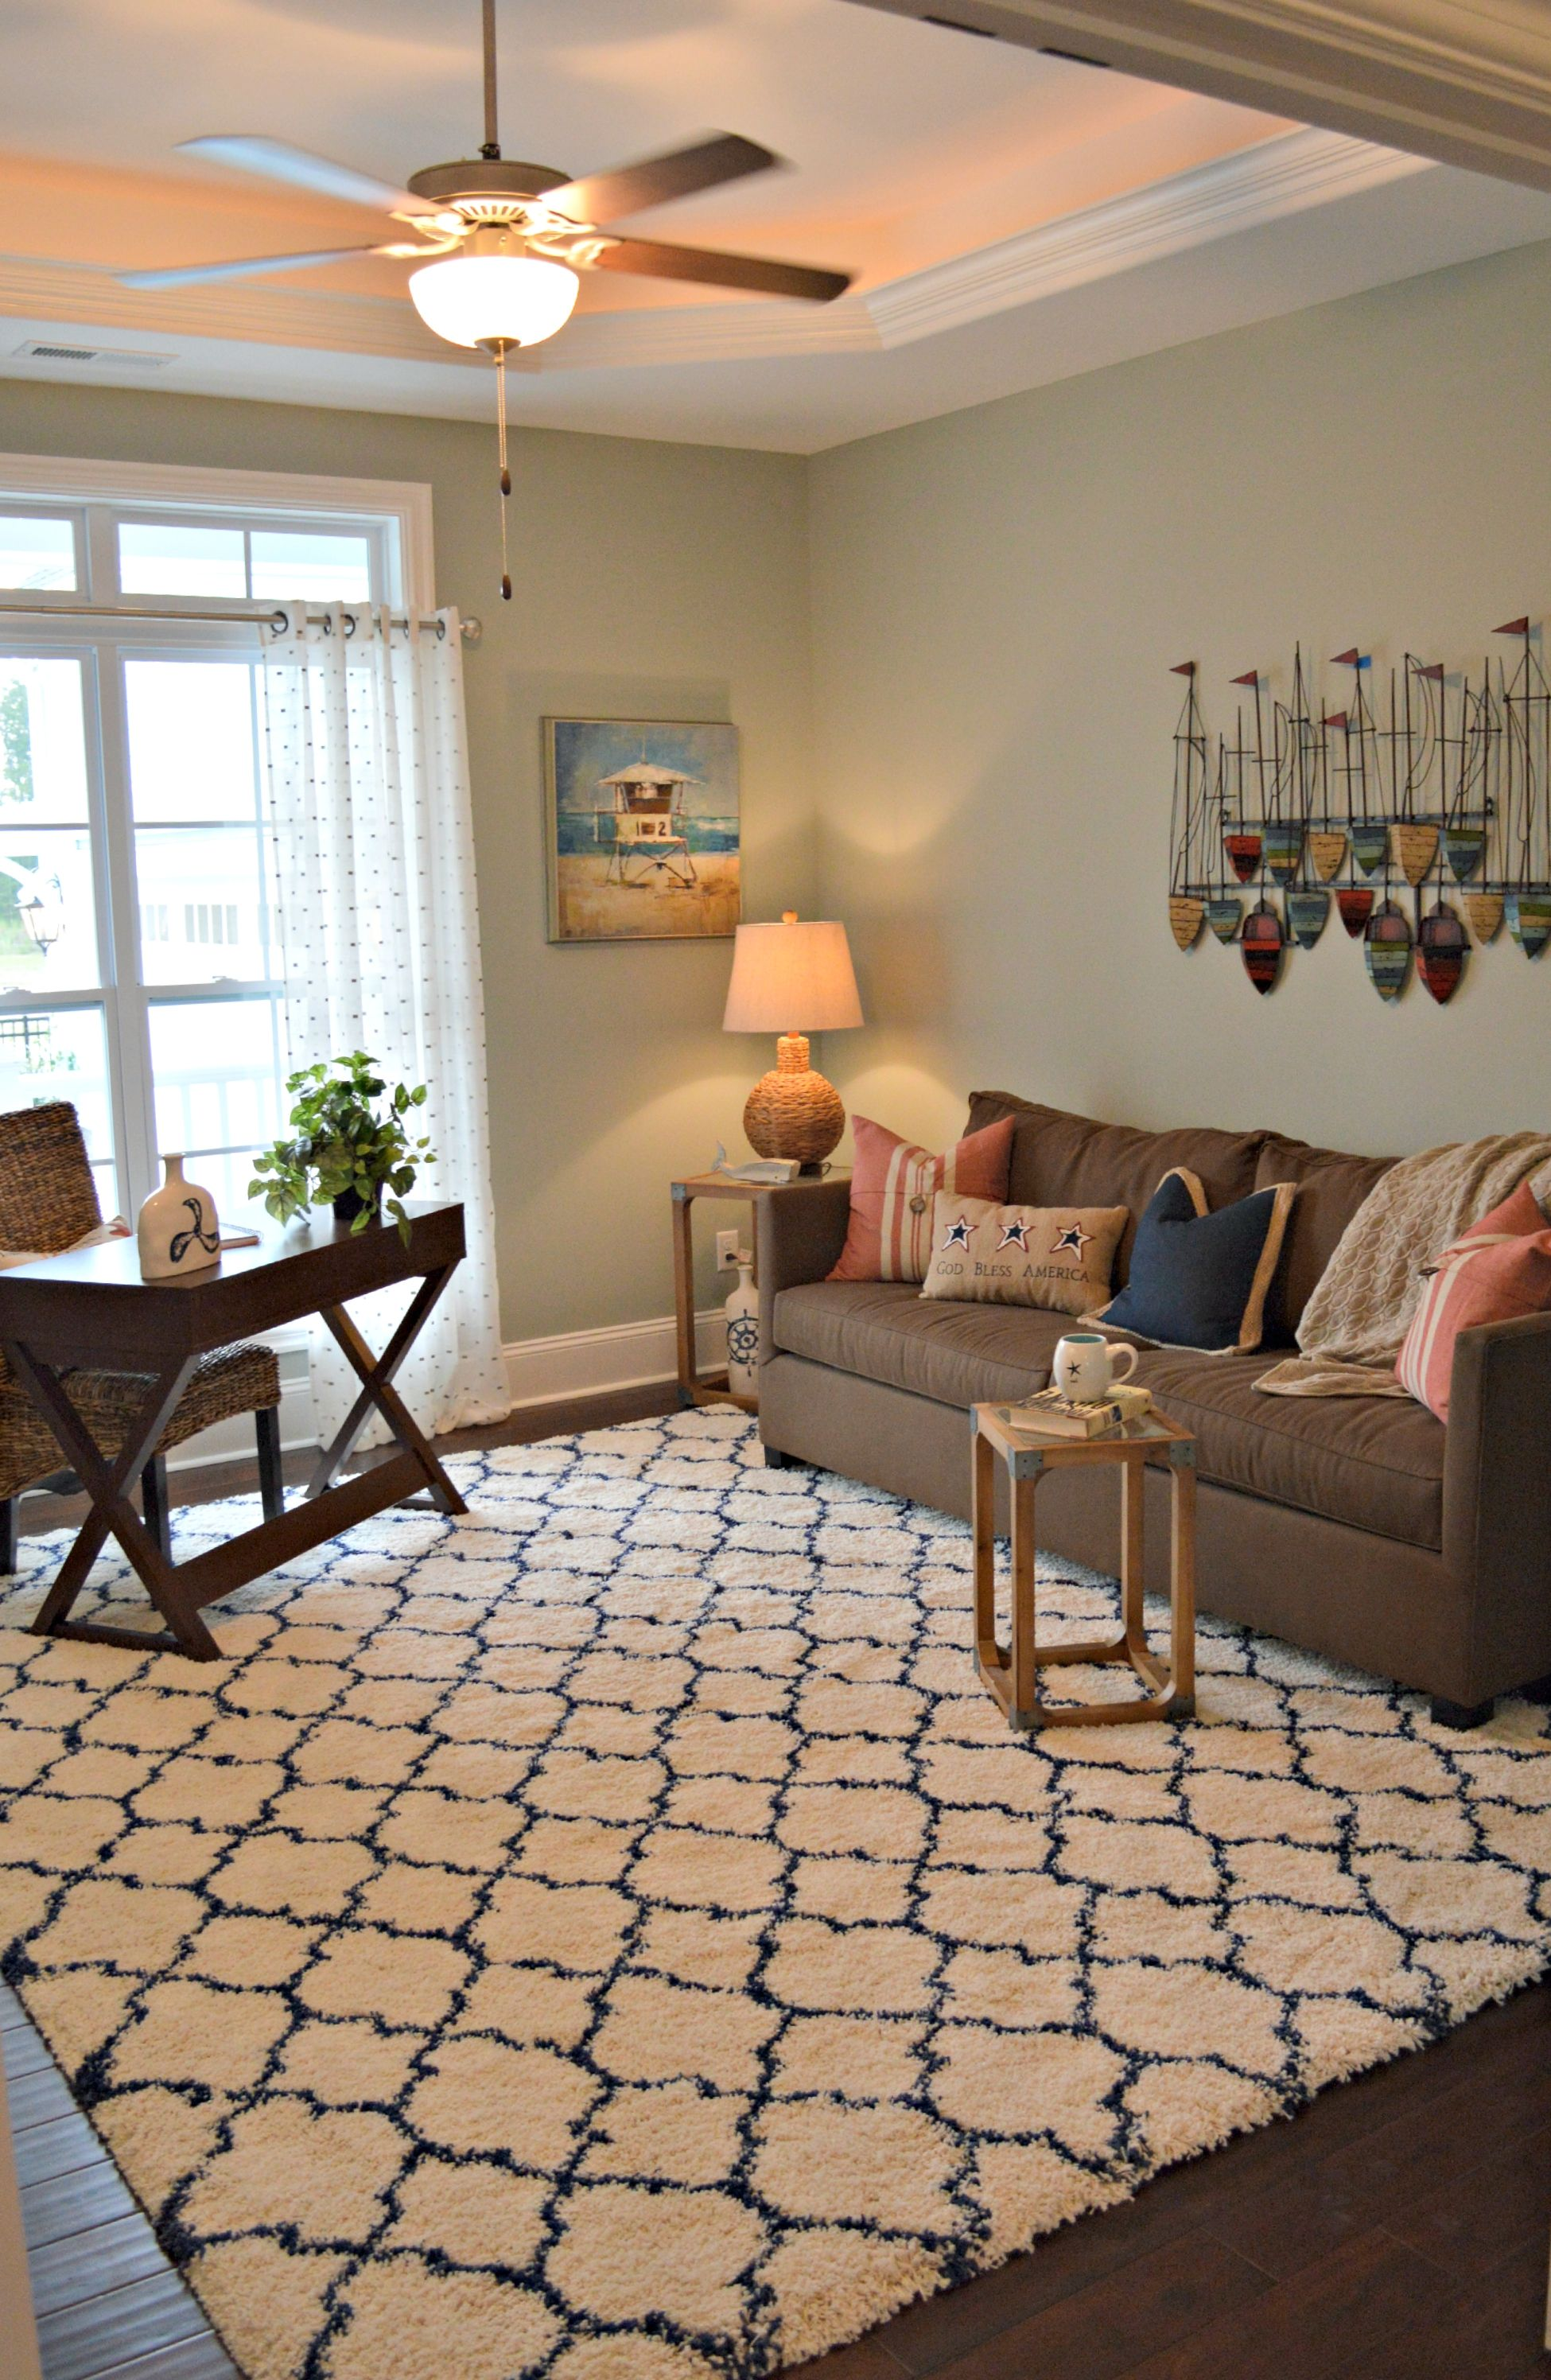 Superior Home Design Outlet Leland Nc Part - 9: ... Home Design Center Leland Nc Cypress Pointe At Brunswick Forest In Leland  Nc New Homes ...